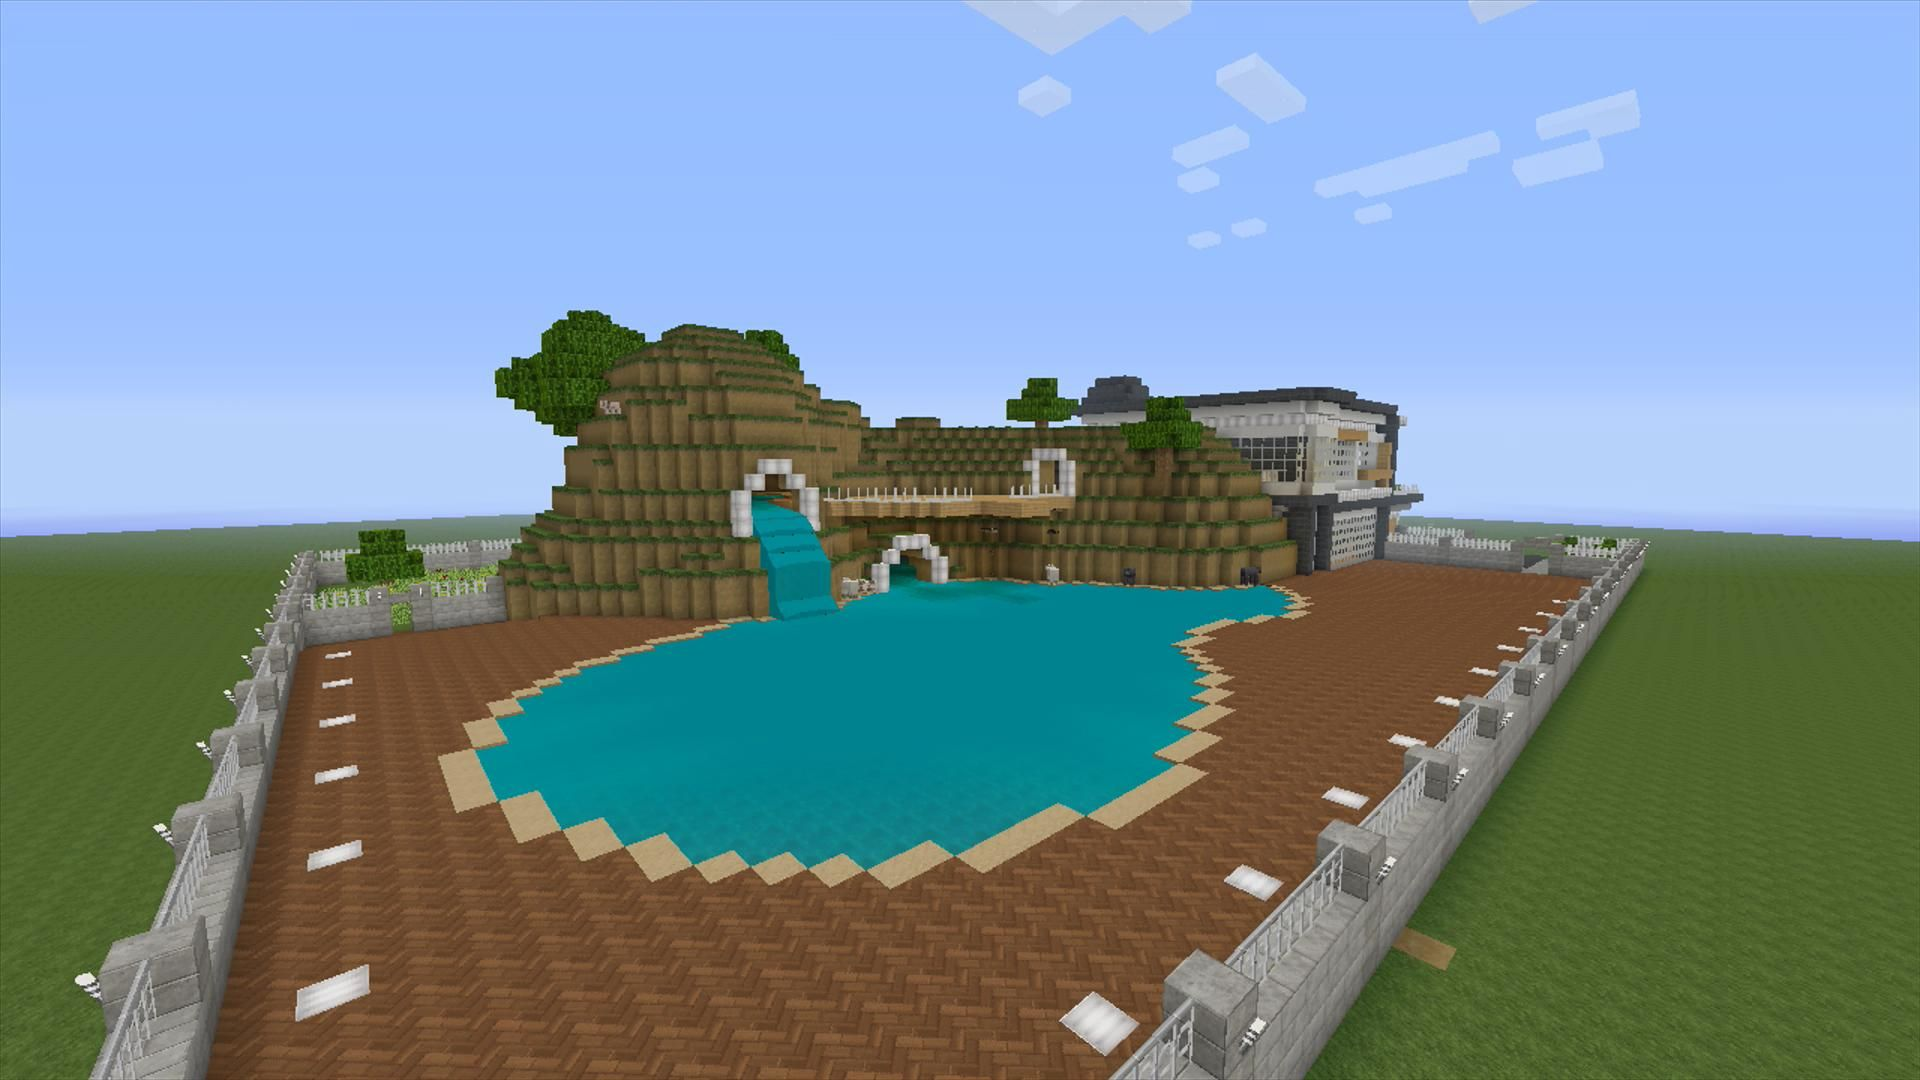 Minecraft Lake House Tutorial. Minecraft Lake House Tutorial   Minecraft   Pinterest   Tutorials